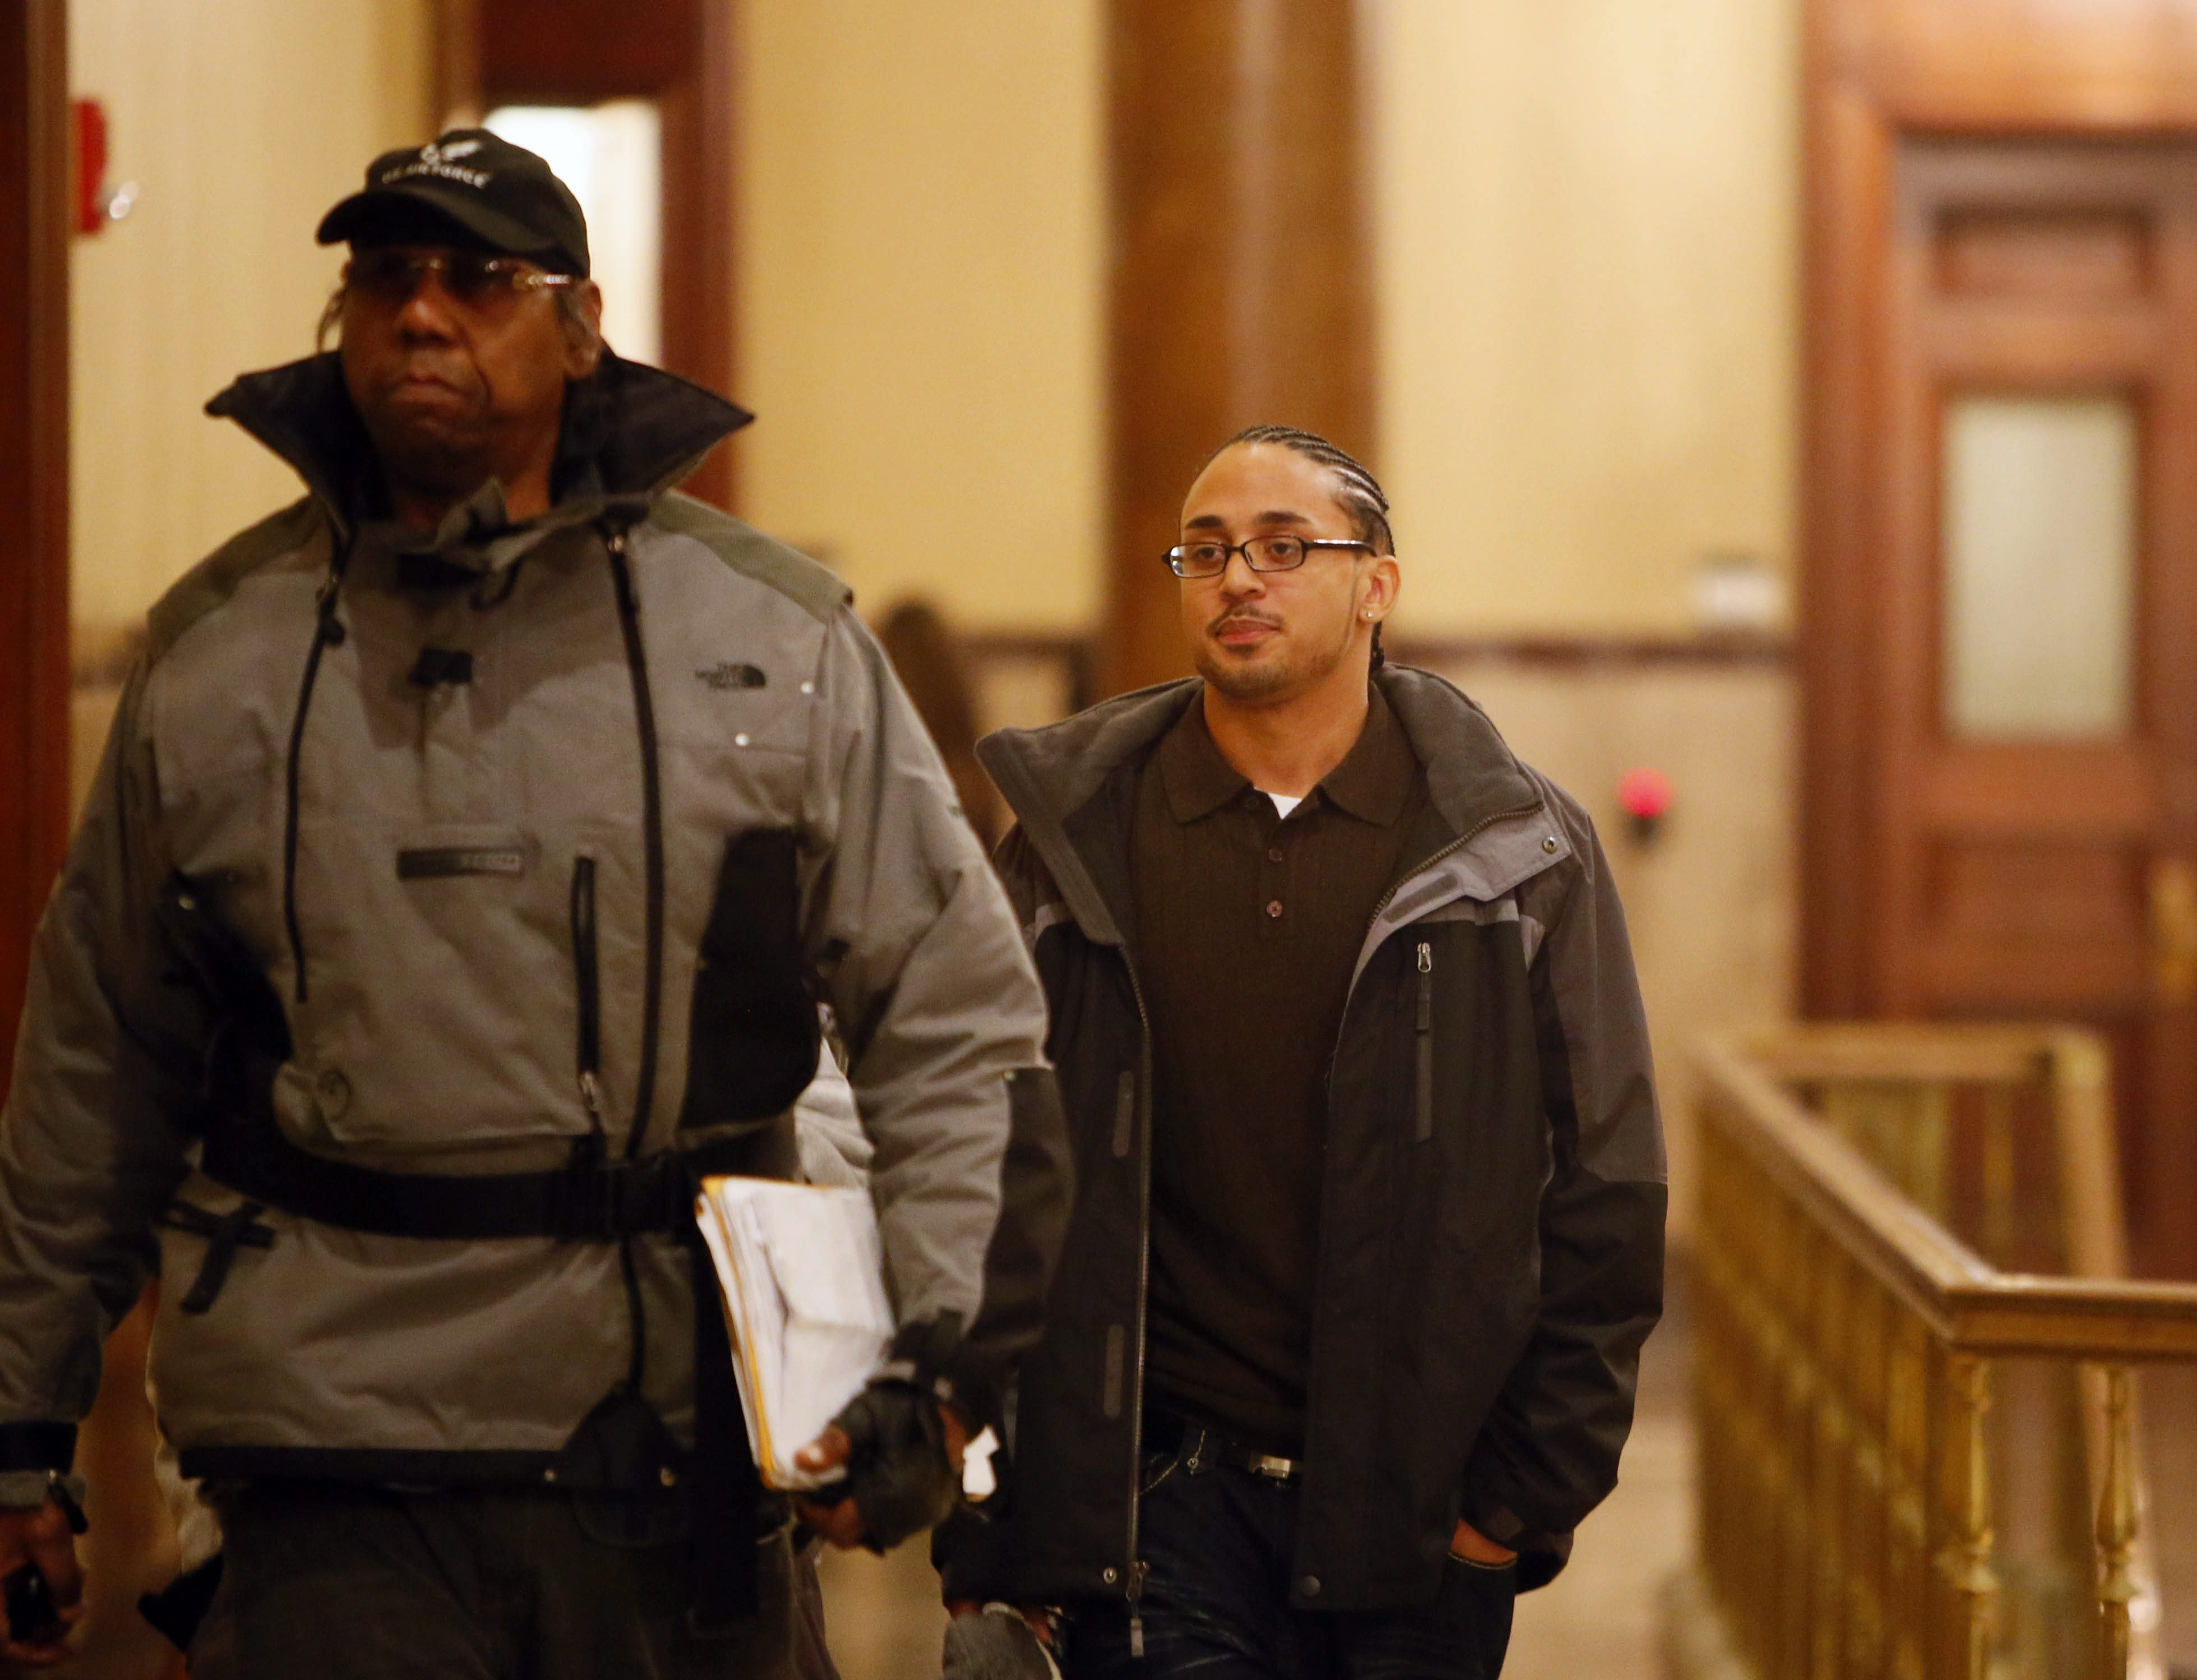 Jerome Thagard, right, leaves the courtroom with Sir Henry Que, the private investigator hired by Thagard's lawyer to work on his case.